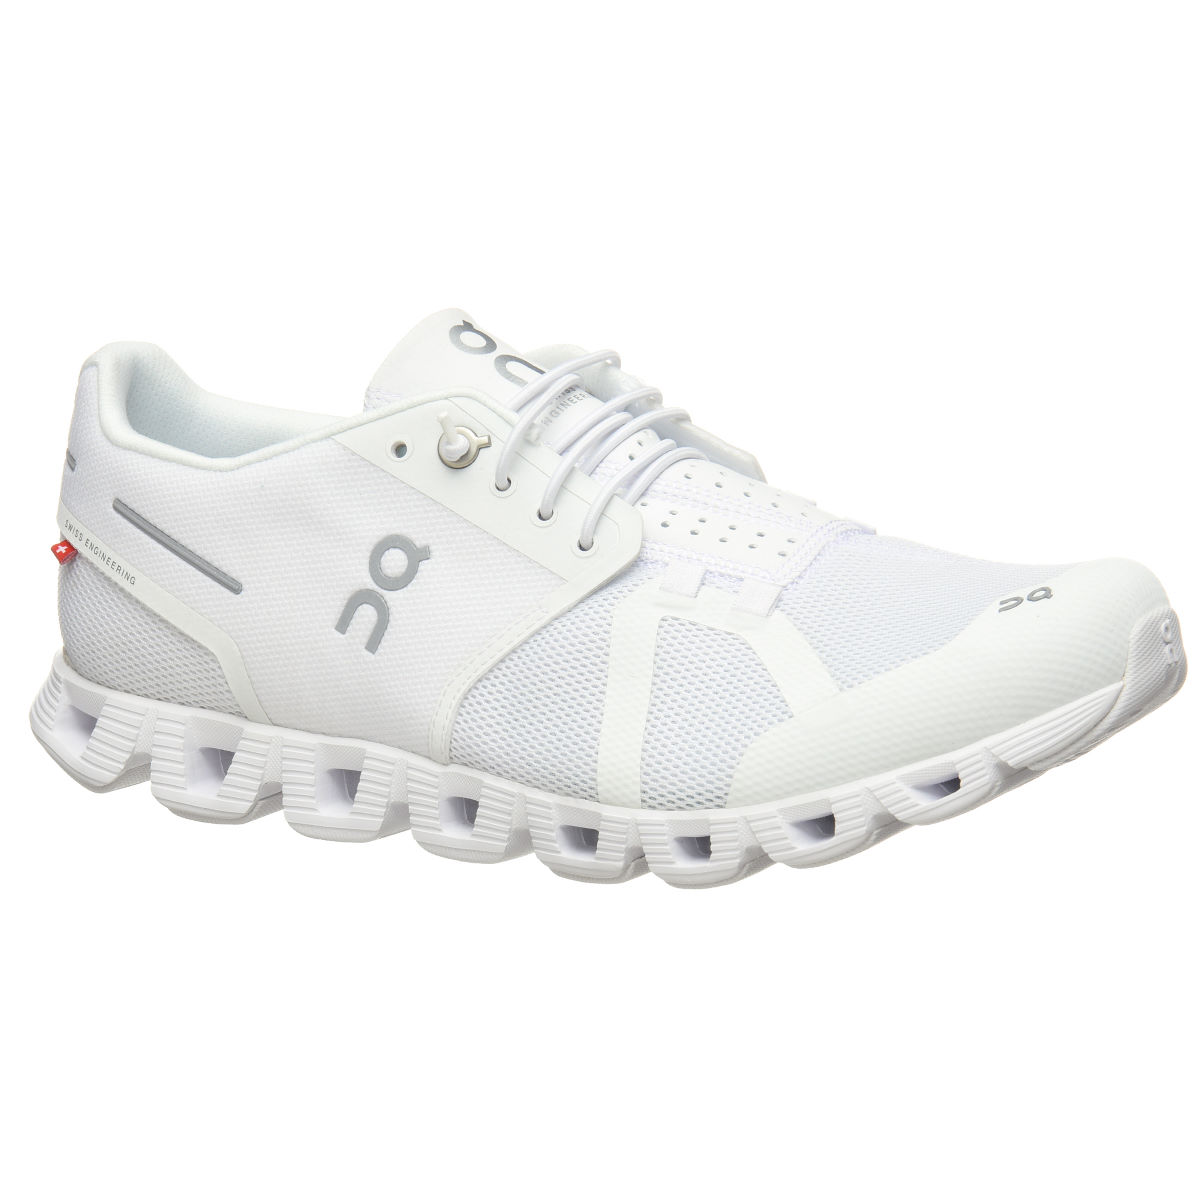 Chaussures Femme ON Running Cloud - 7.5 All White